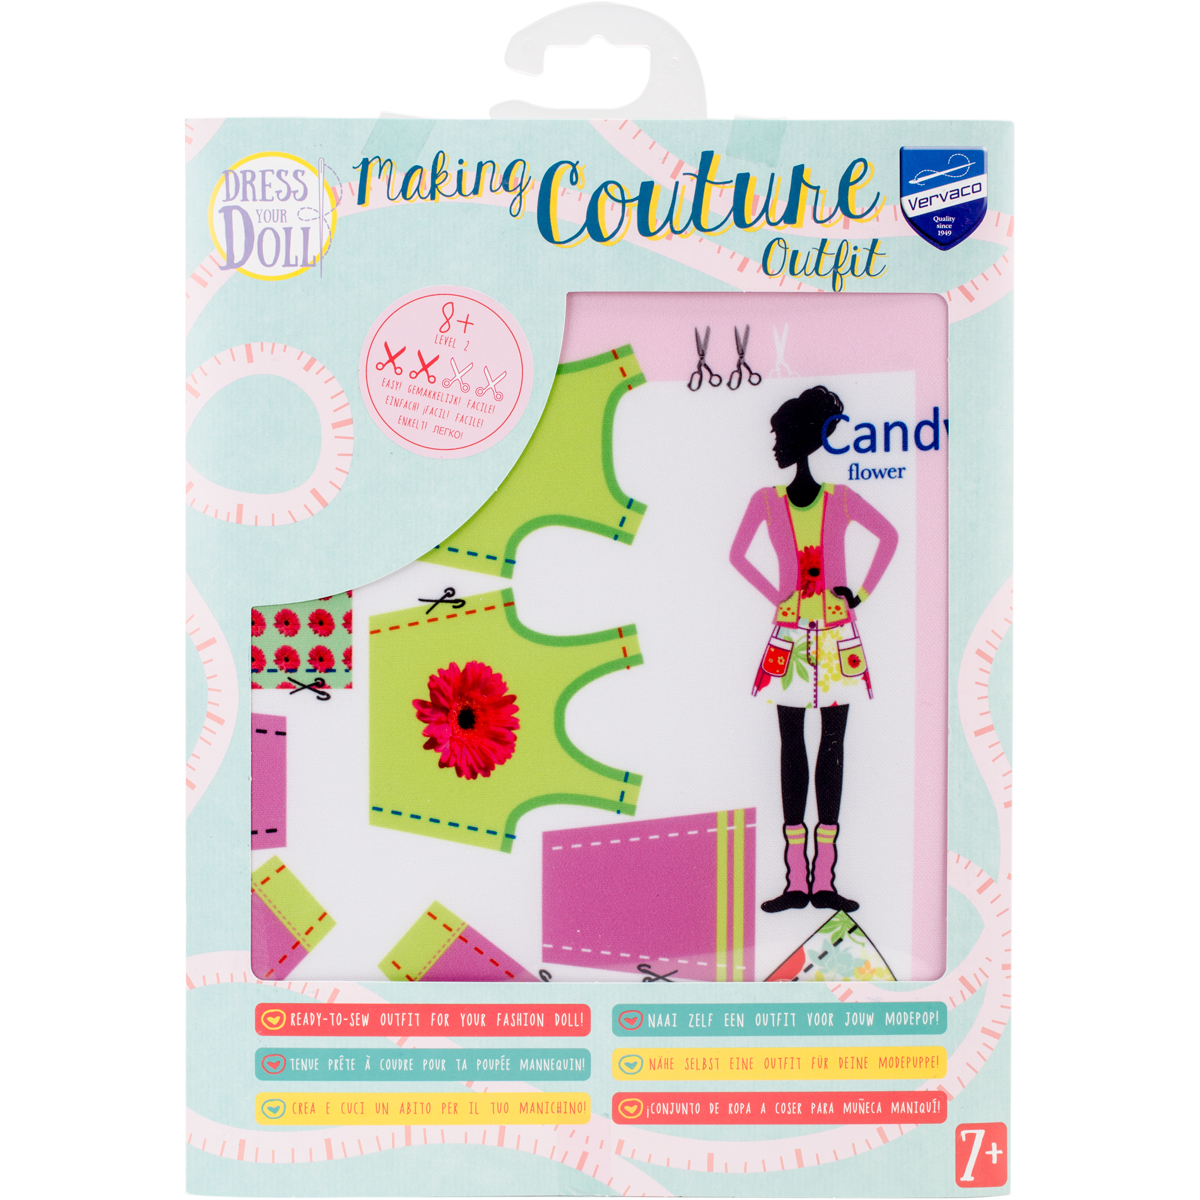 Maggy Candy Dress Your Doll Ready To Sew Outfit Vervaco Making Couture Sweet Layered Dress Design Pattern